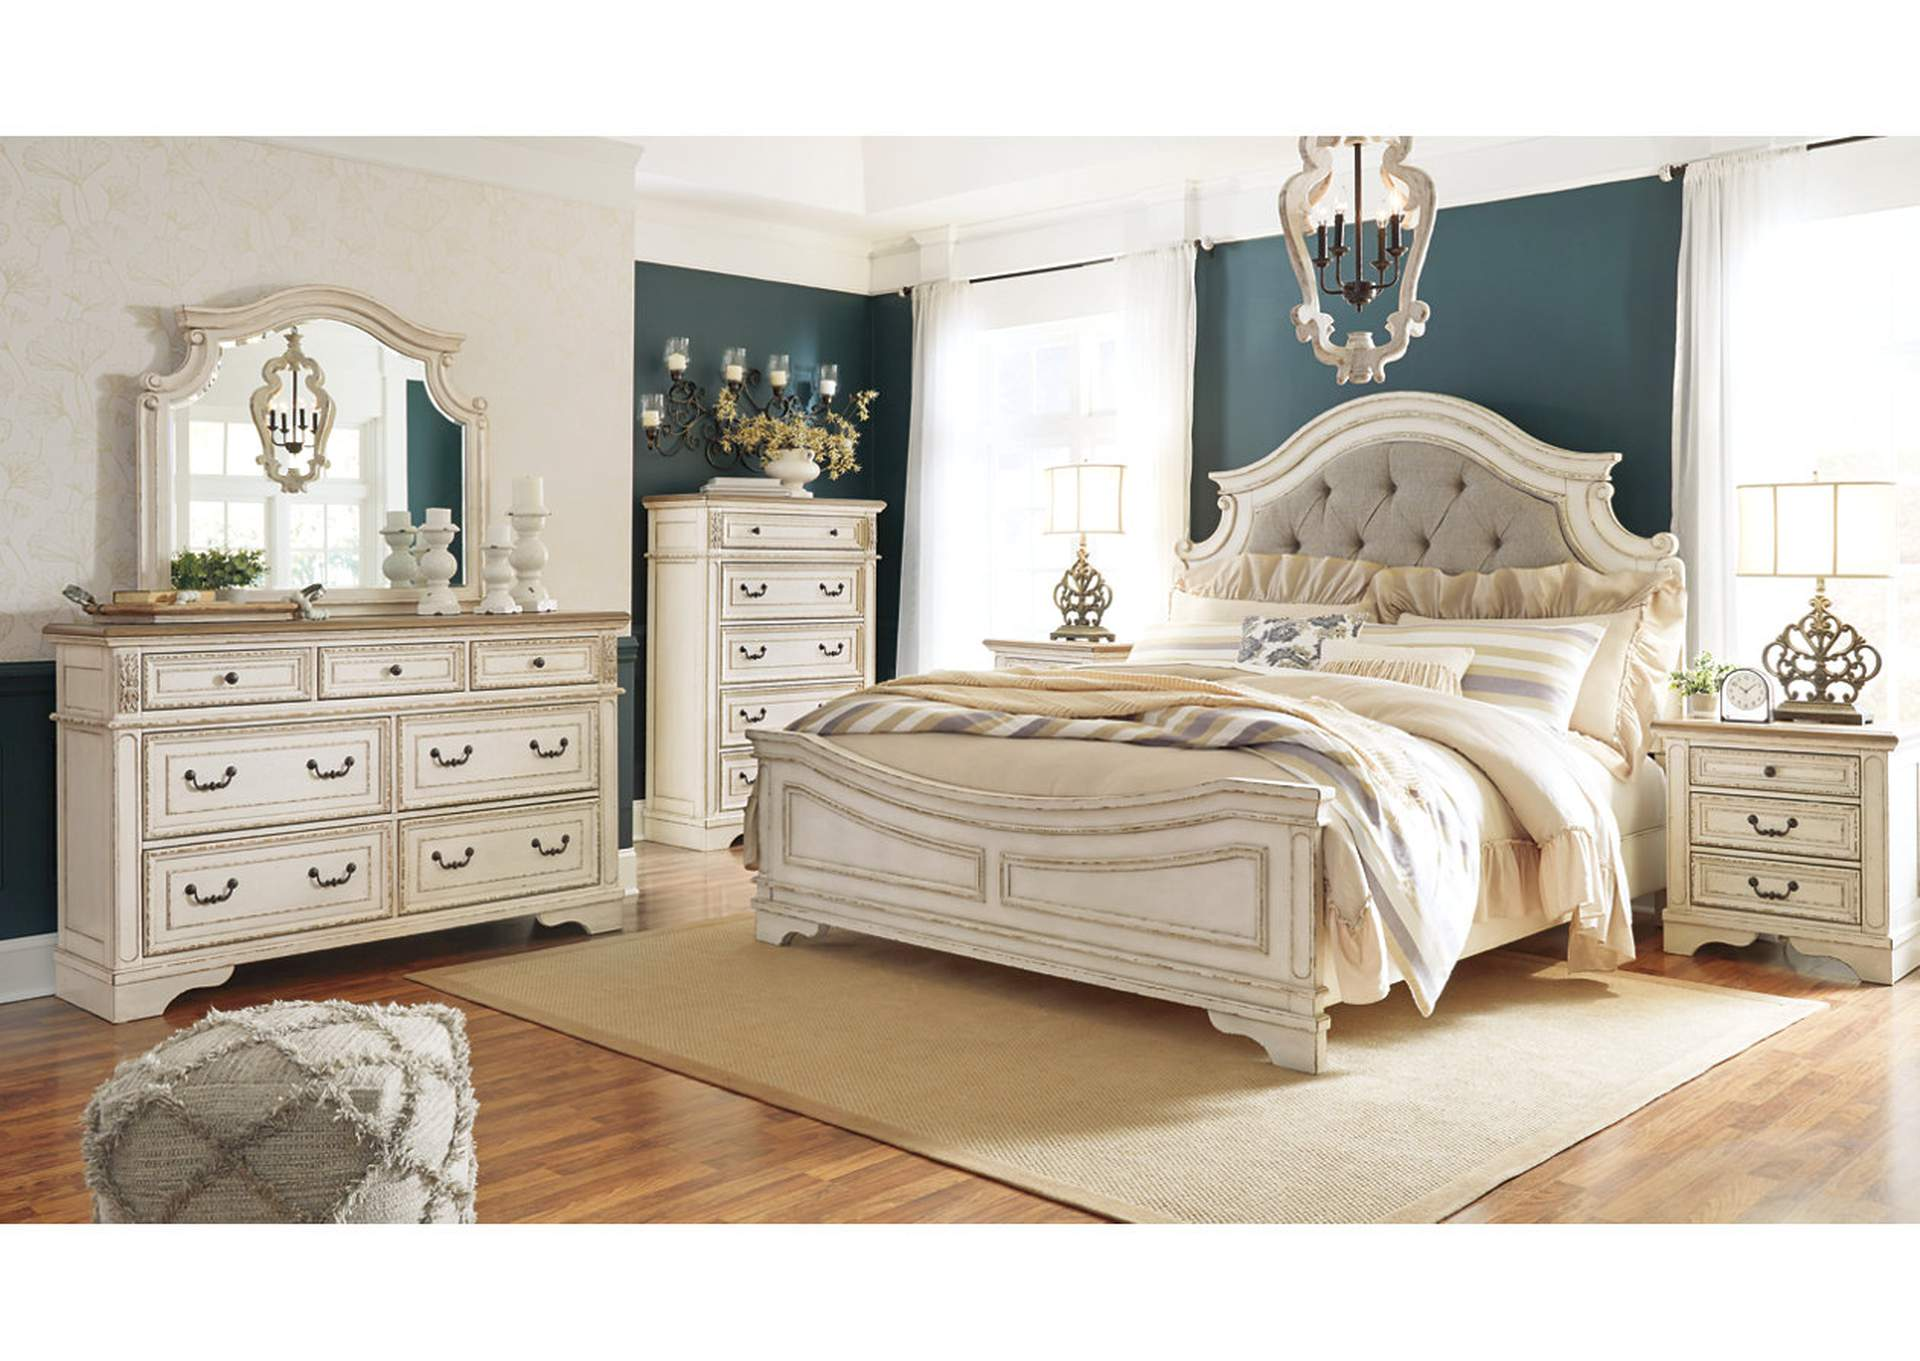 Realyn Chipped White King Panel Bed and Dresser w/Mirror,Signature Design By Ashley